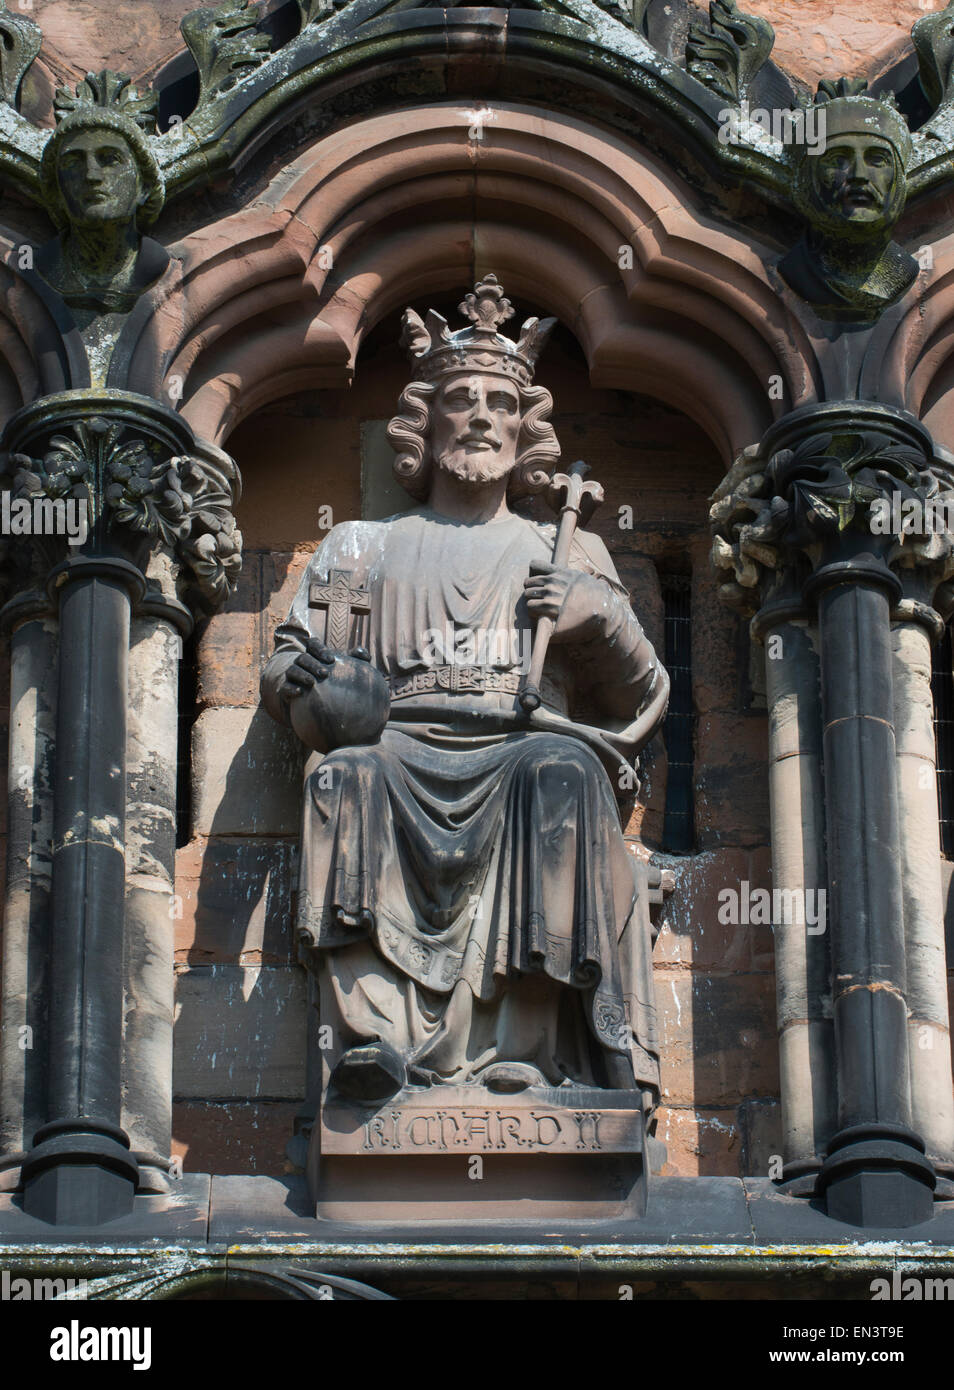 Statue of Richard II on the west front of Lichfield Cathedral, Lichfield, Staffordshire, England. - Stock Image